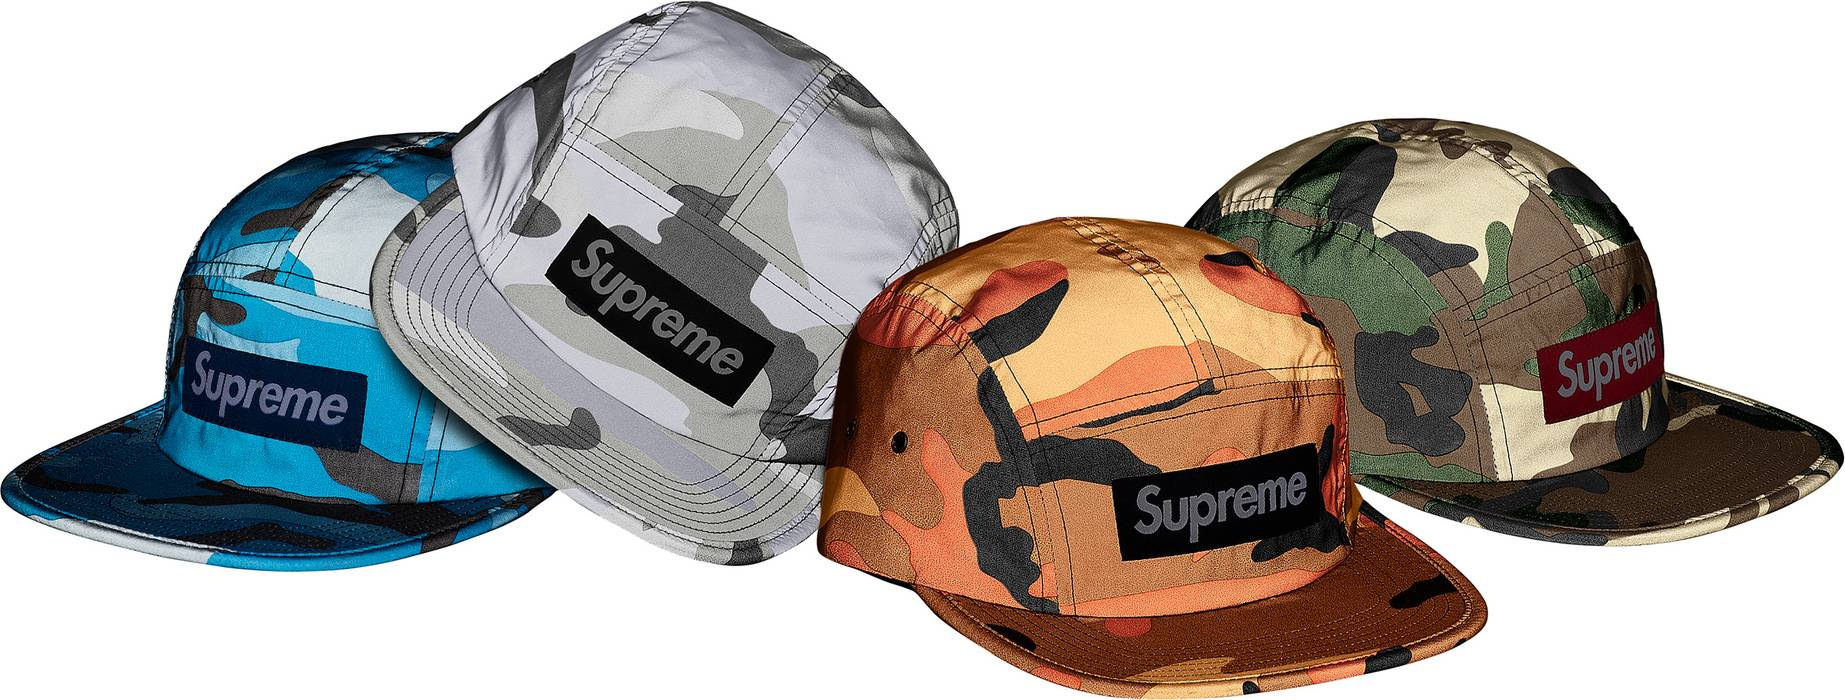 Supreme Reflective Camo Camp Cap Olive Size one size - Hats for Sale ... 990c10e0b